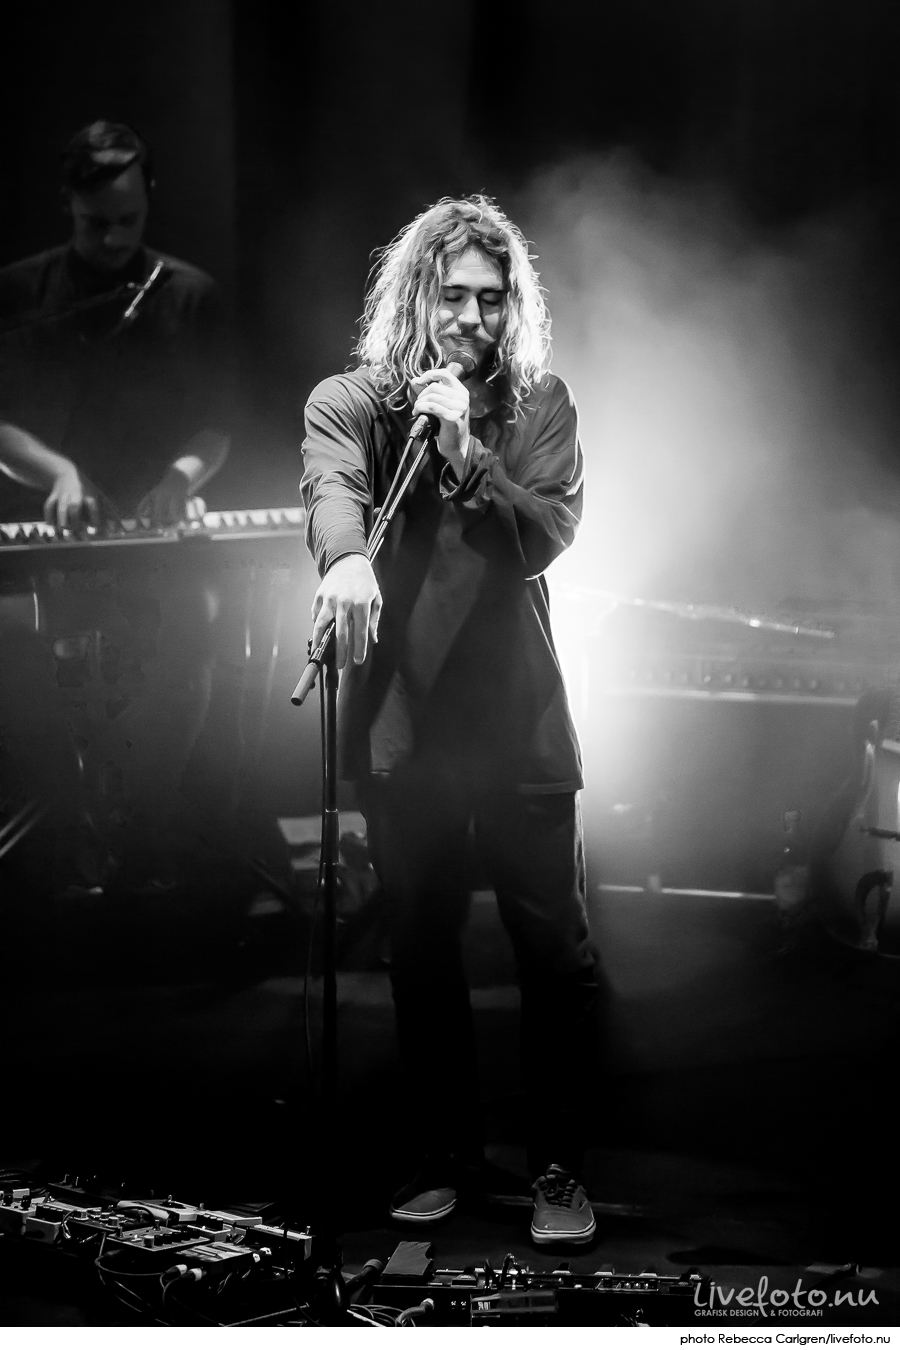 160321-Matt-Corby_photo_Rebecca-Carlgren_livefoto.nu_-29